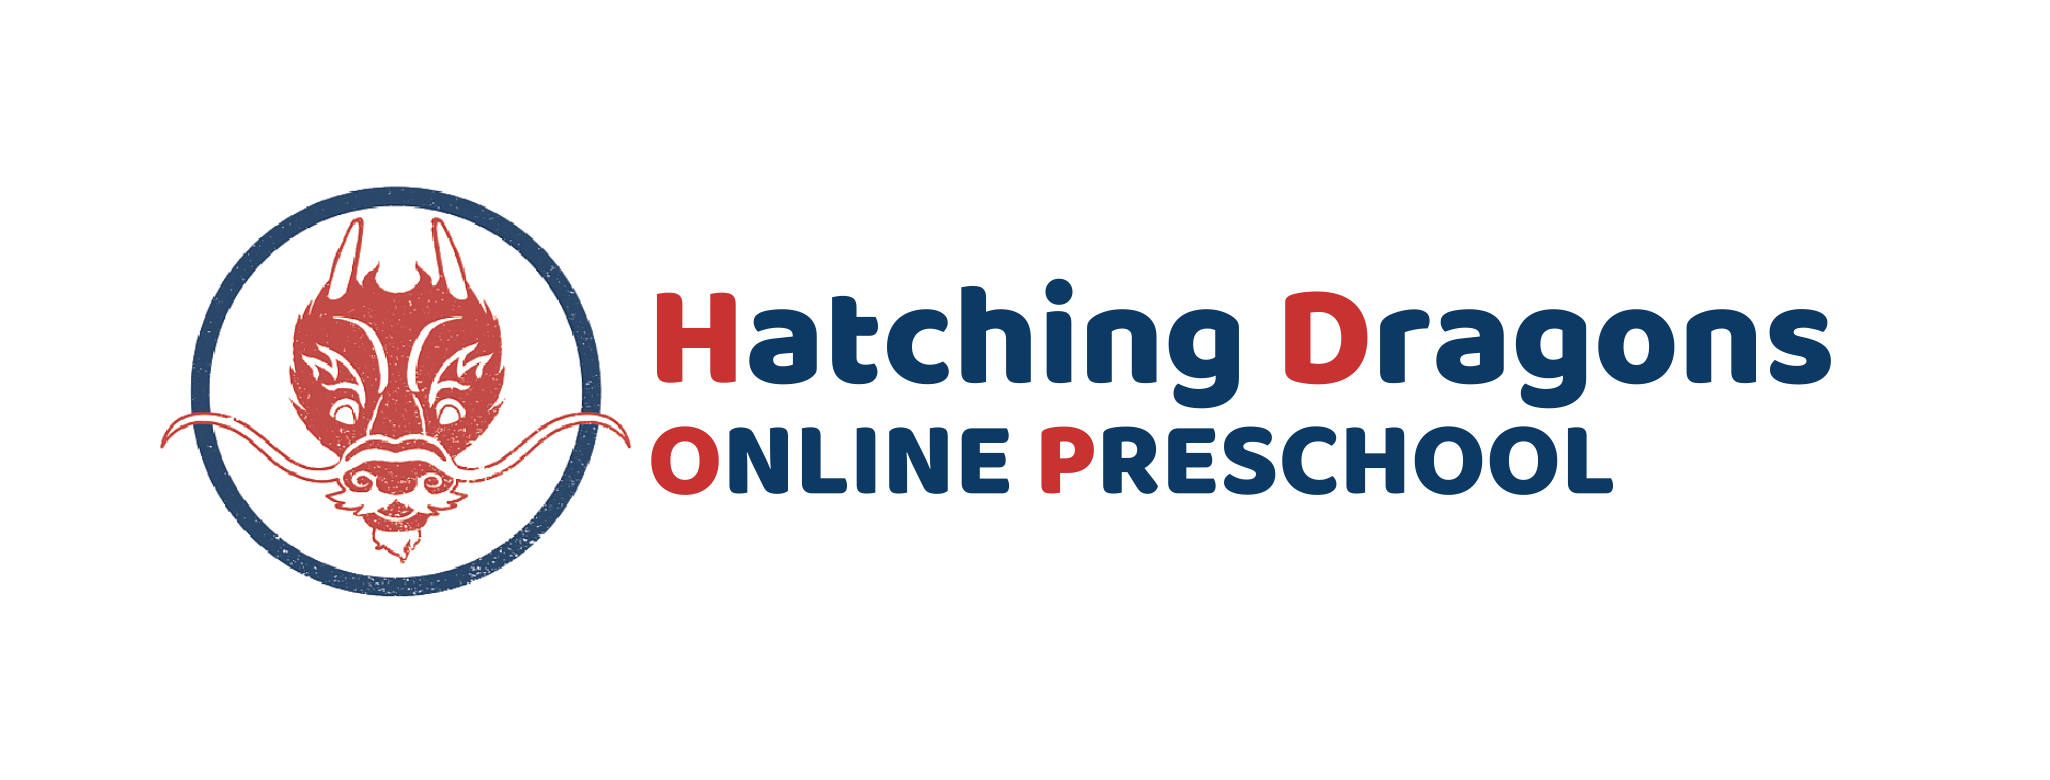 Hatching Dragons Online Preschool